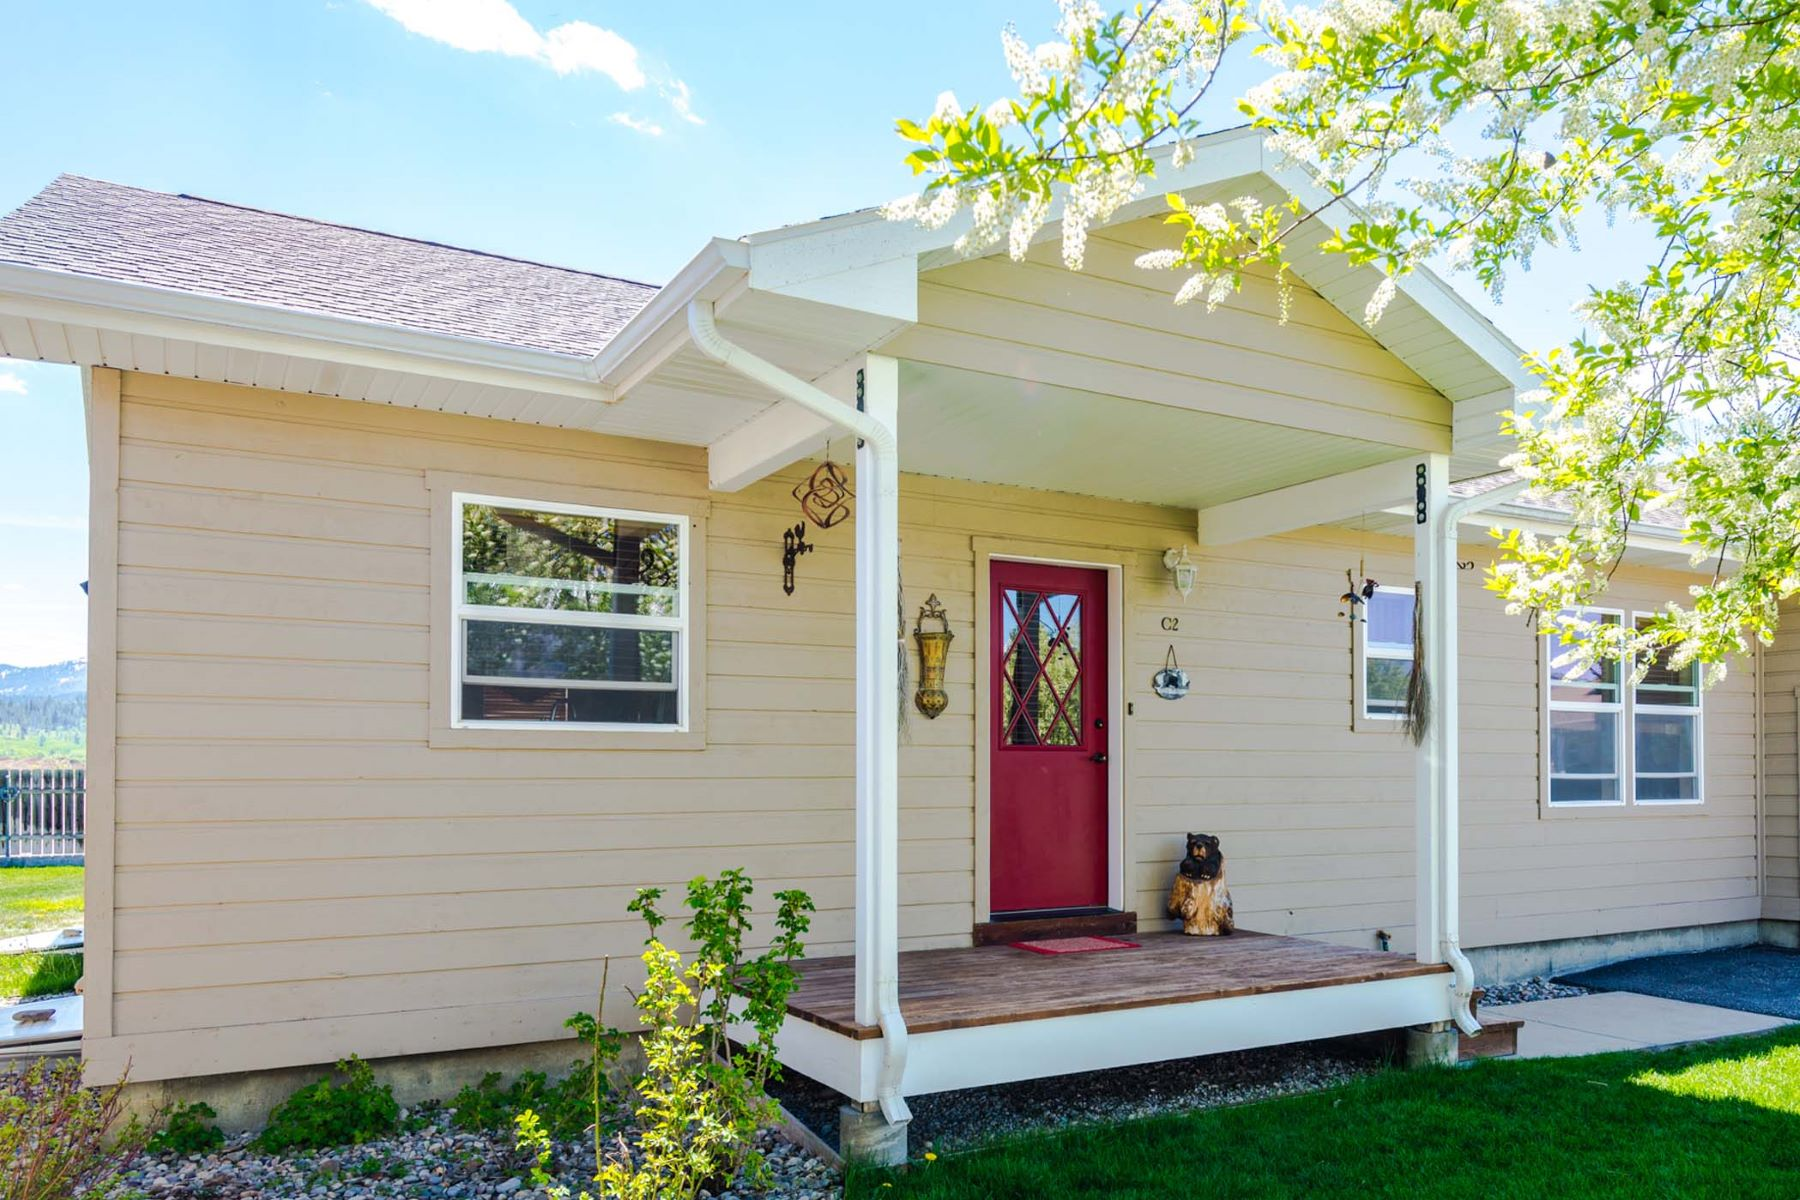 Single Family Home for Sale at Remodeled Four Bedroom Townhome 504 Snake River Drive, Unit C2 Alpine, Wyoming 83128 United States